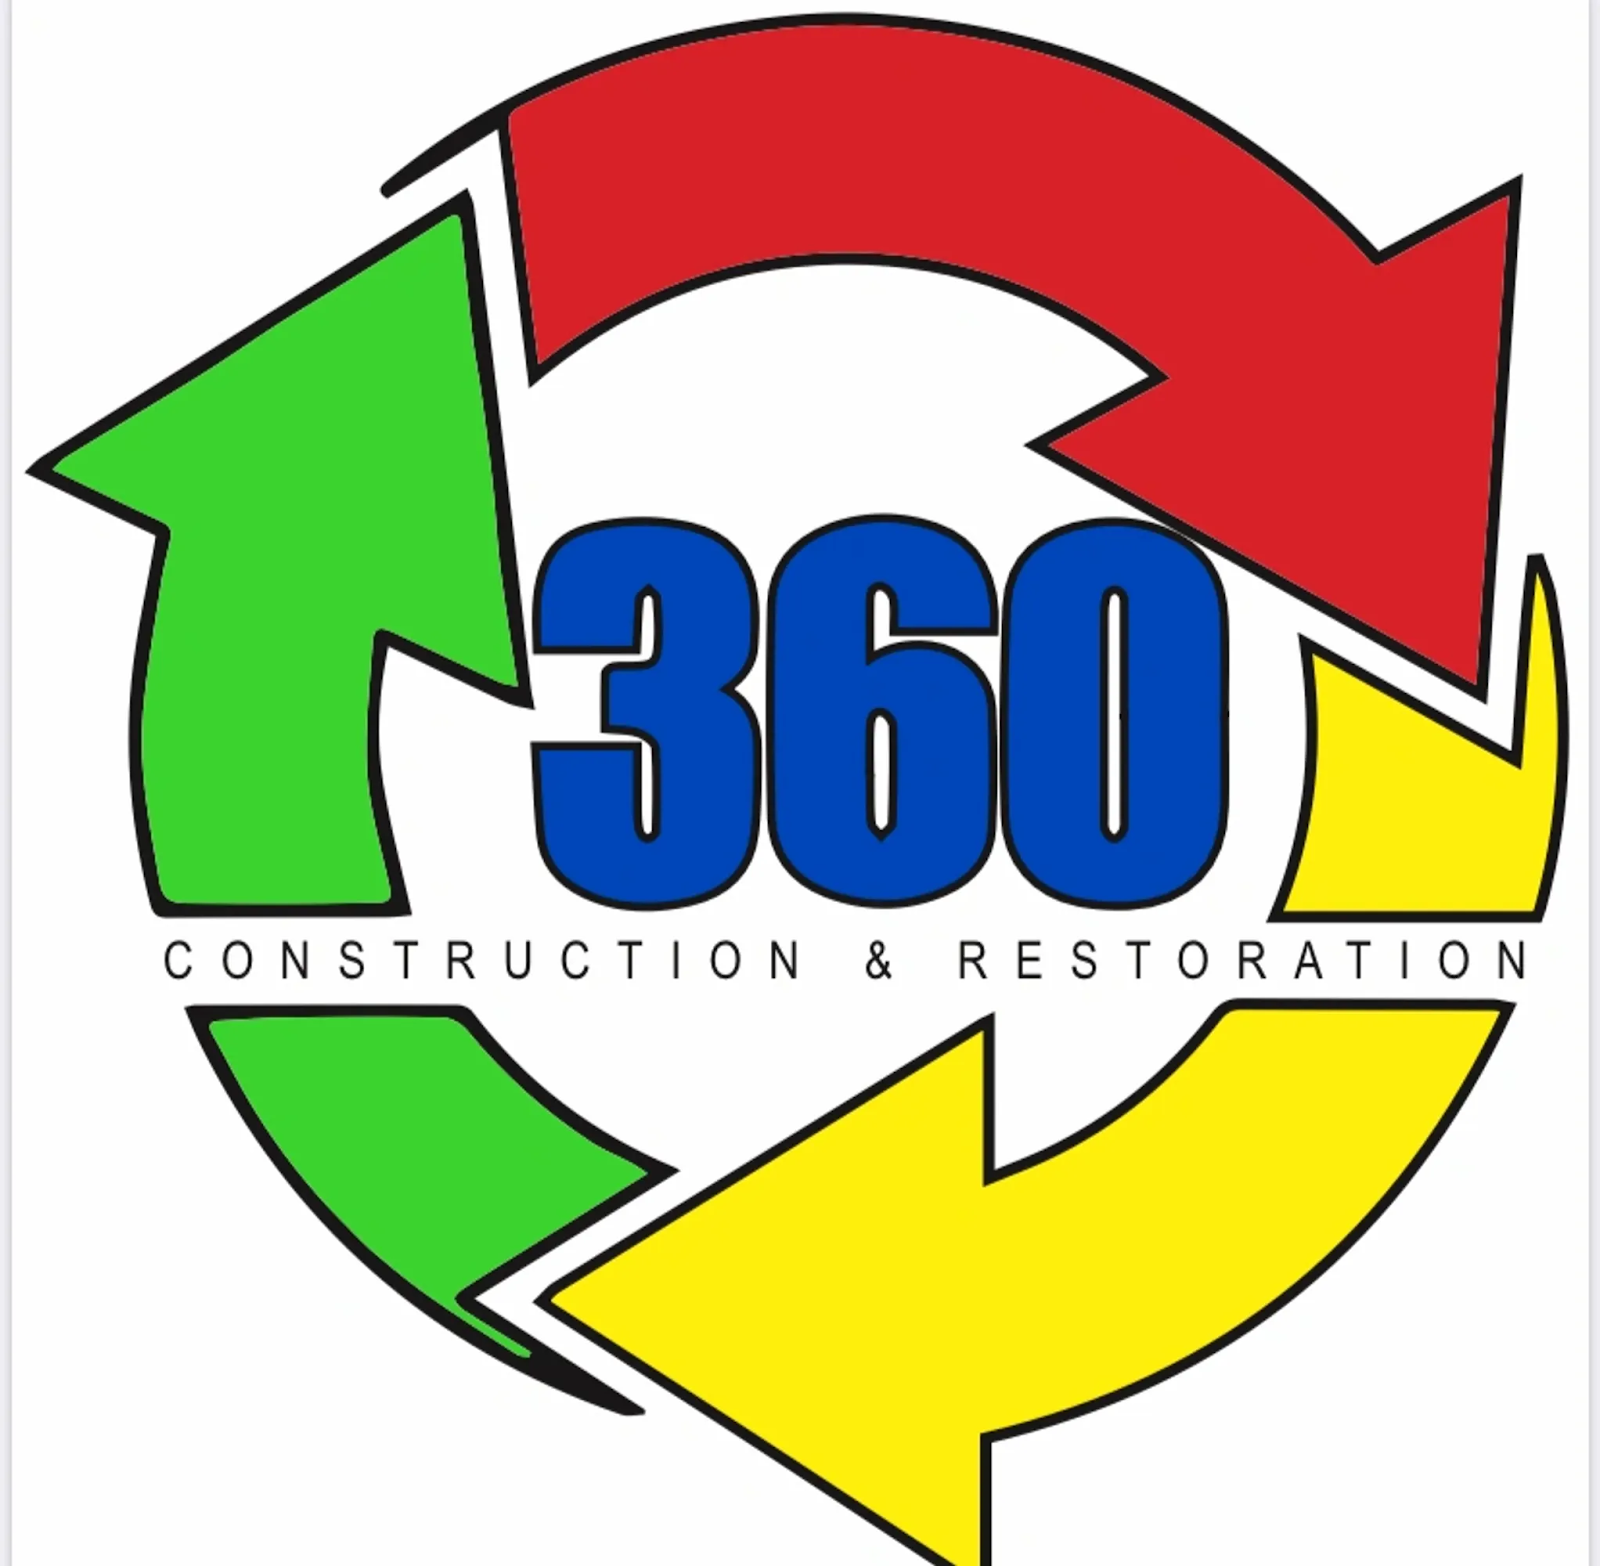 360 Construction & Restoration - cover photo